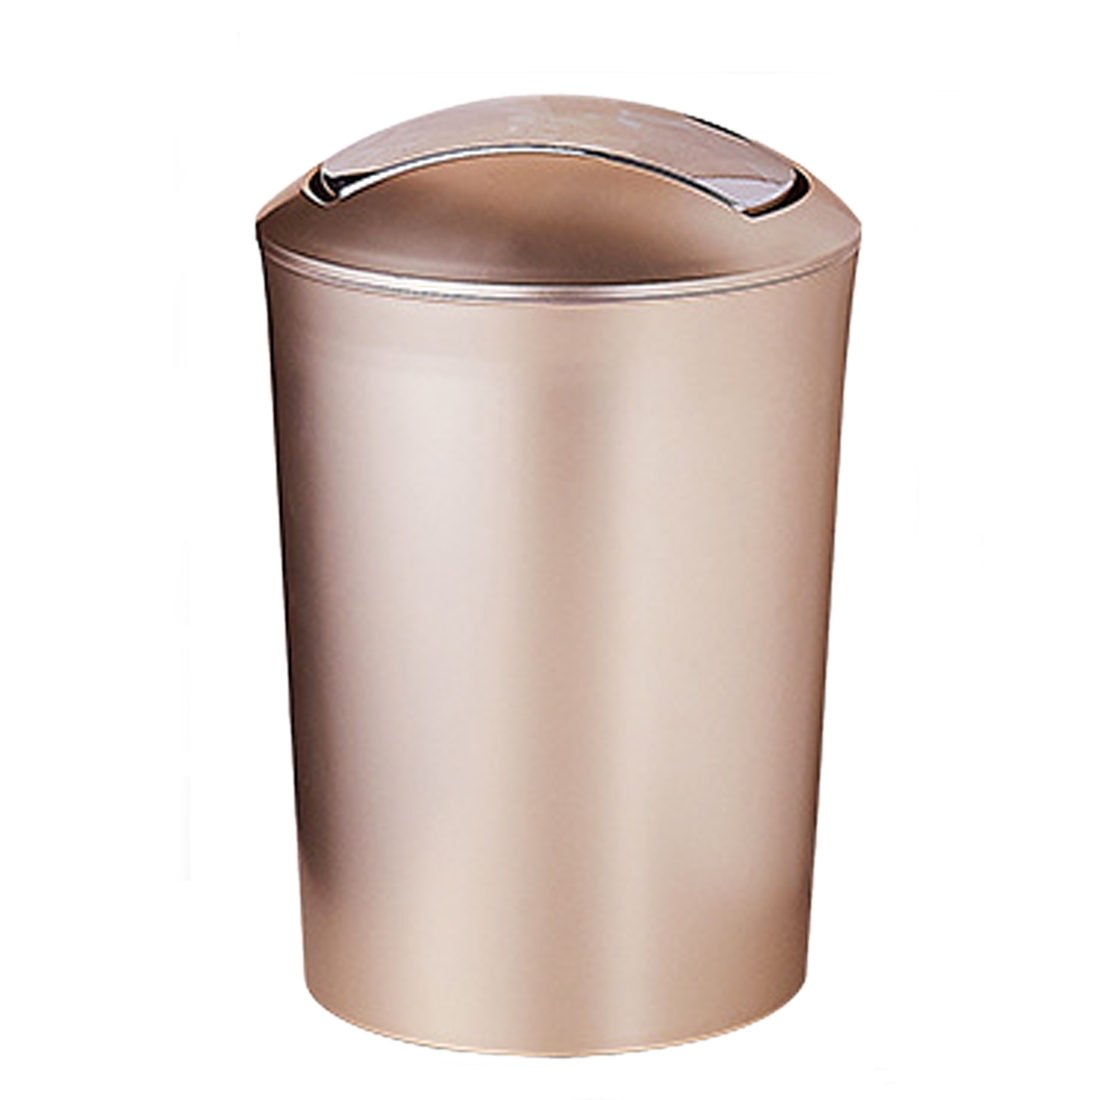 Copper Trash Can With Lid Us 16 47 22 Off 6 5l European Style Trash Garbage Can Wastebin With Lid Luxury Gold Color In Waste Bins From Home Garden On Aliexpress